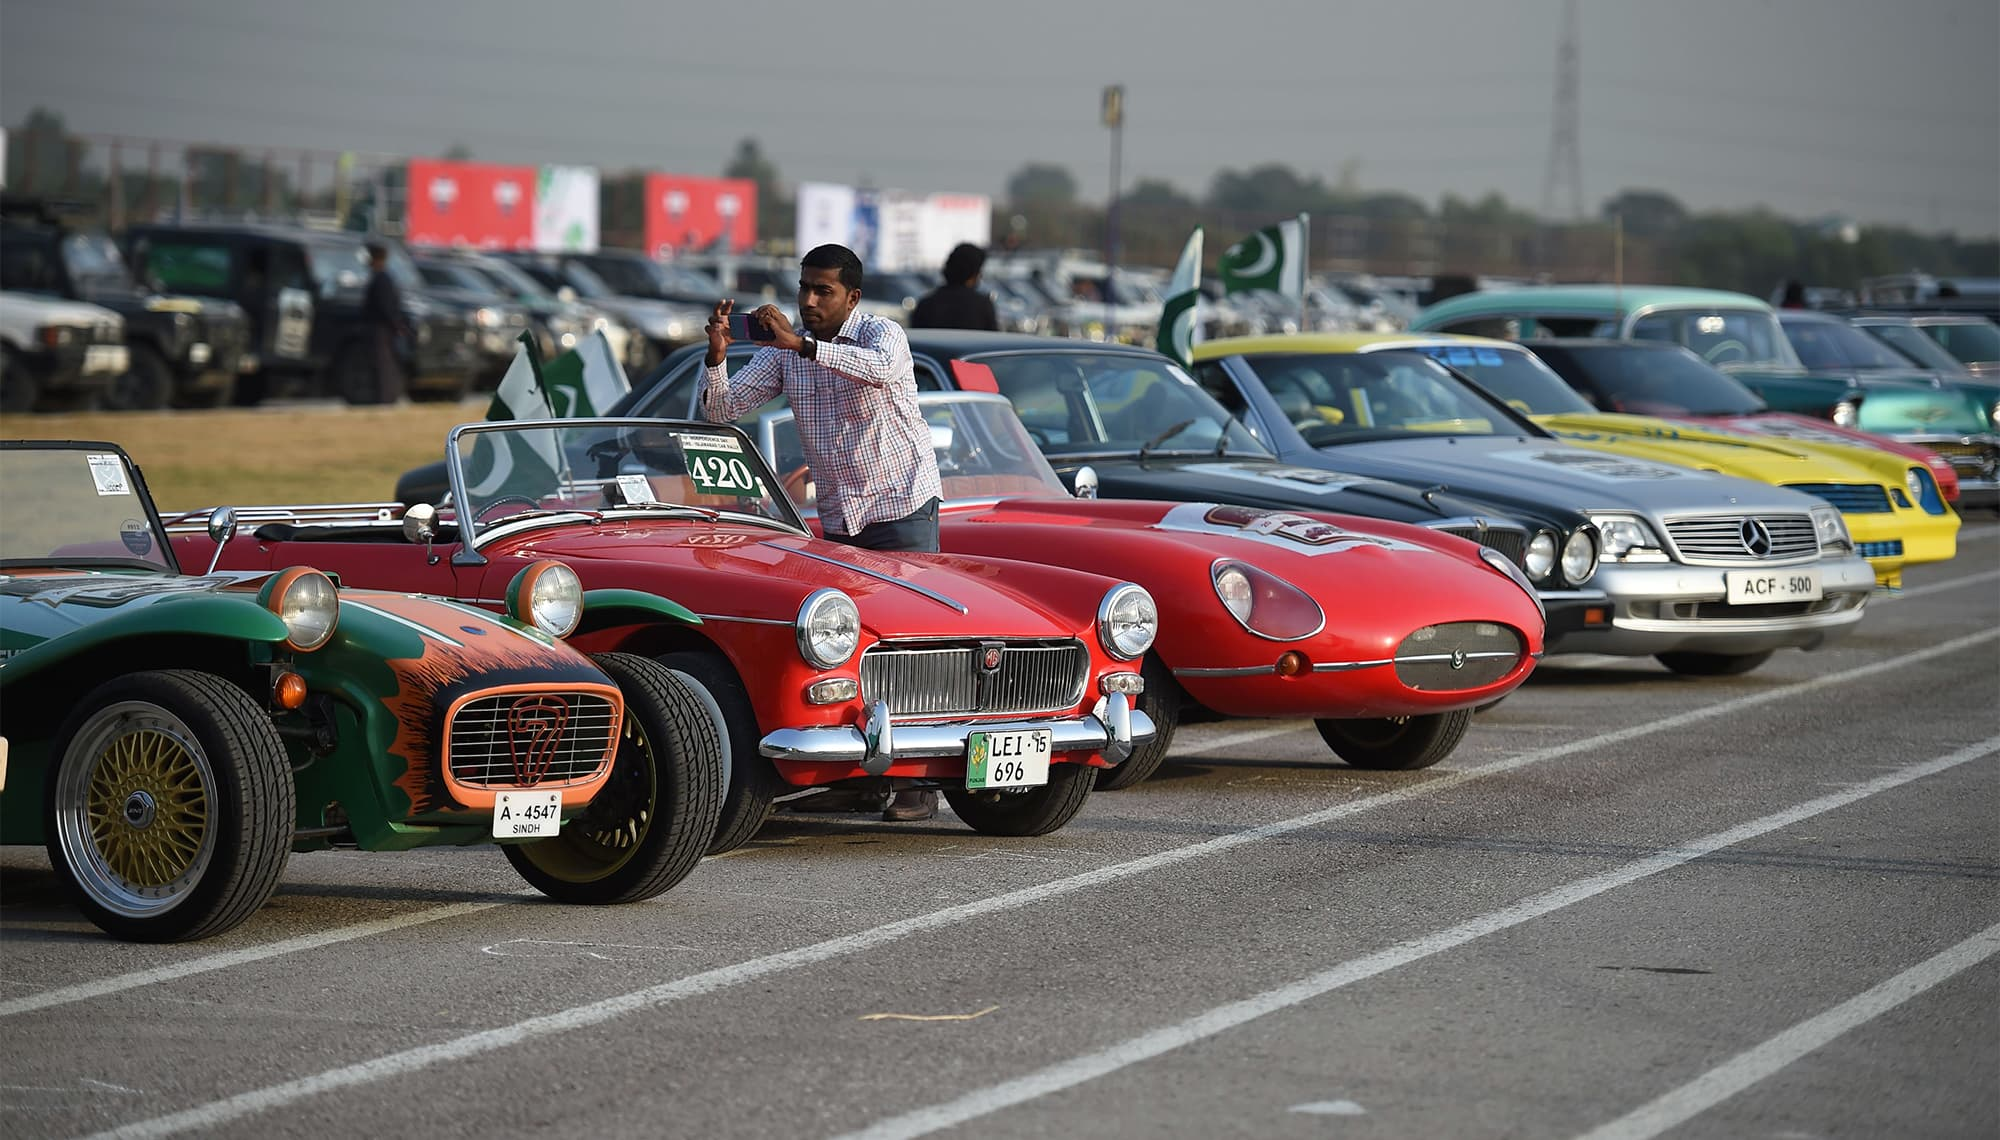 A Pakistani man takes pictures of vintage cars at the end of Motor Rally in Islamabad on October 23, 2017.  The rally which is organised by Pakistan's army gathered different vehicles from 23 different motor clubs across Pakistan. / AFP PHOTO / FAROOQ NAEEM — AFP or licensors